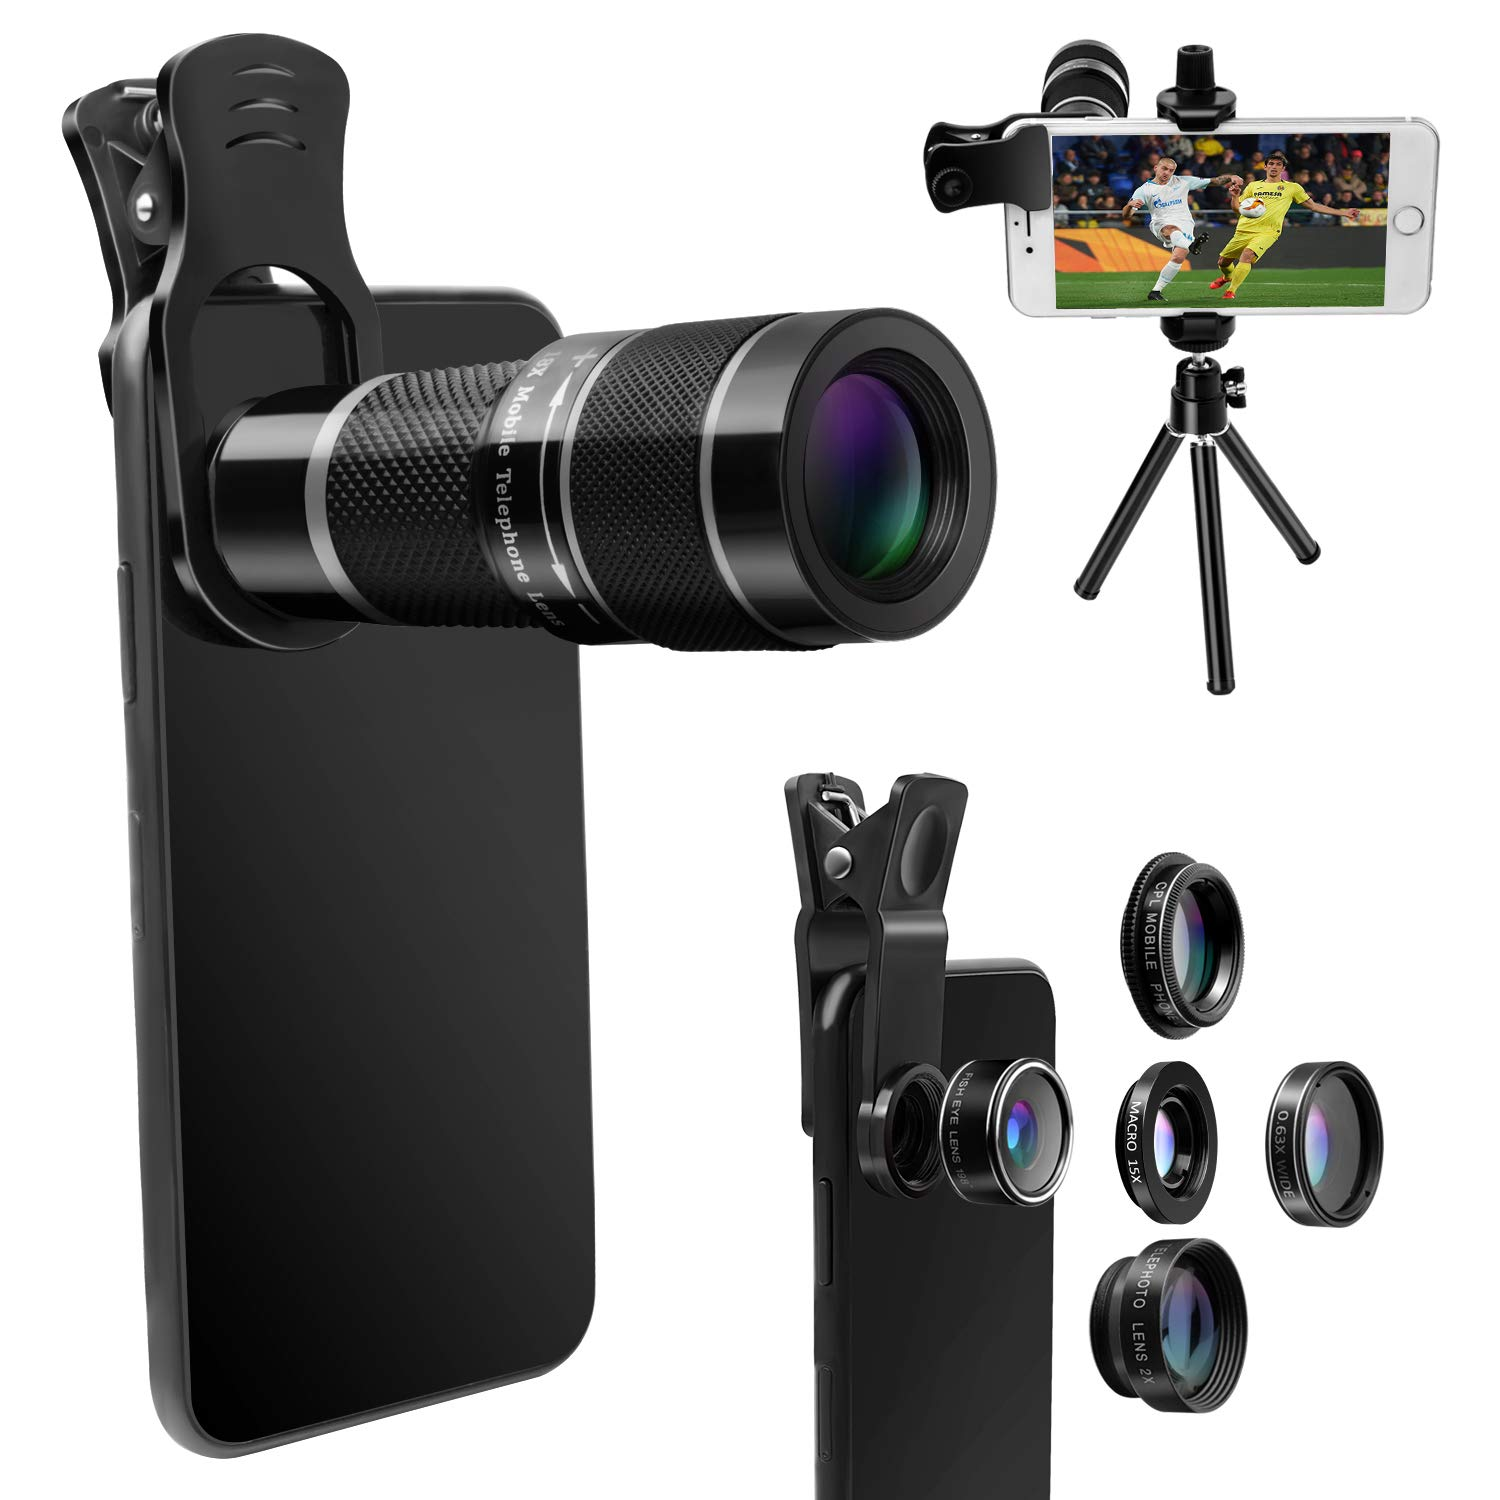 Phone-Lens-Kit with Tripod+Remote Shutter,6 in 1 Camera Lens for iPhone-18X Telephoto Lens+Wide Angle& Macro Lens+Fisheye+2X Lens+CPL, for Most Smart-Phone